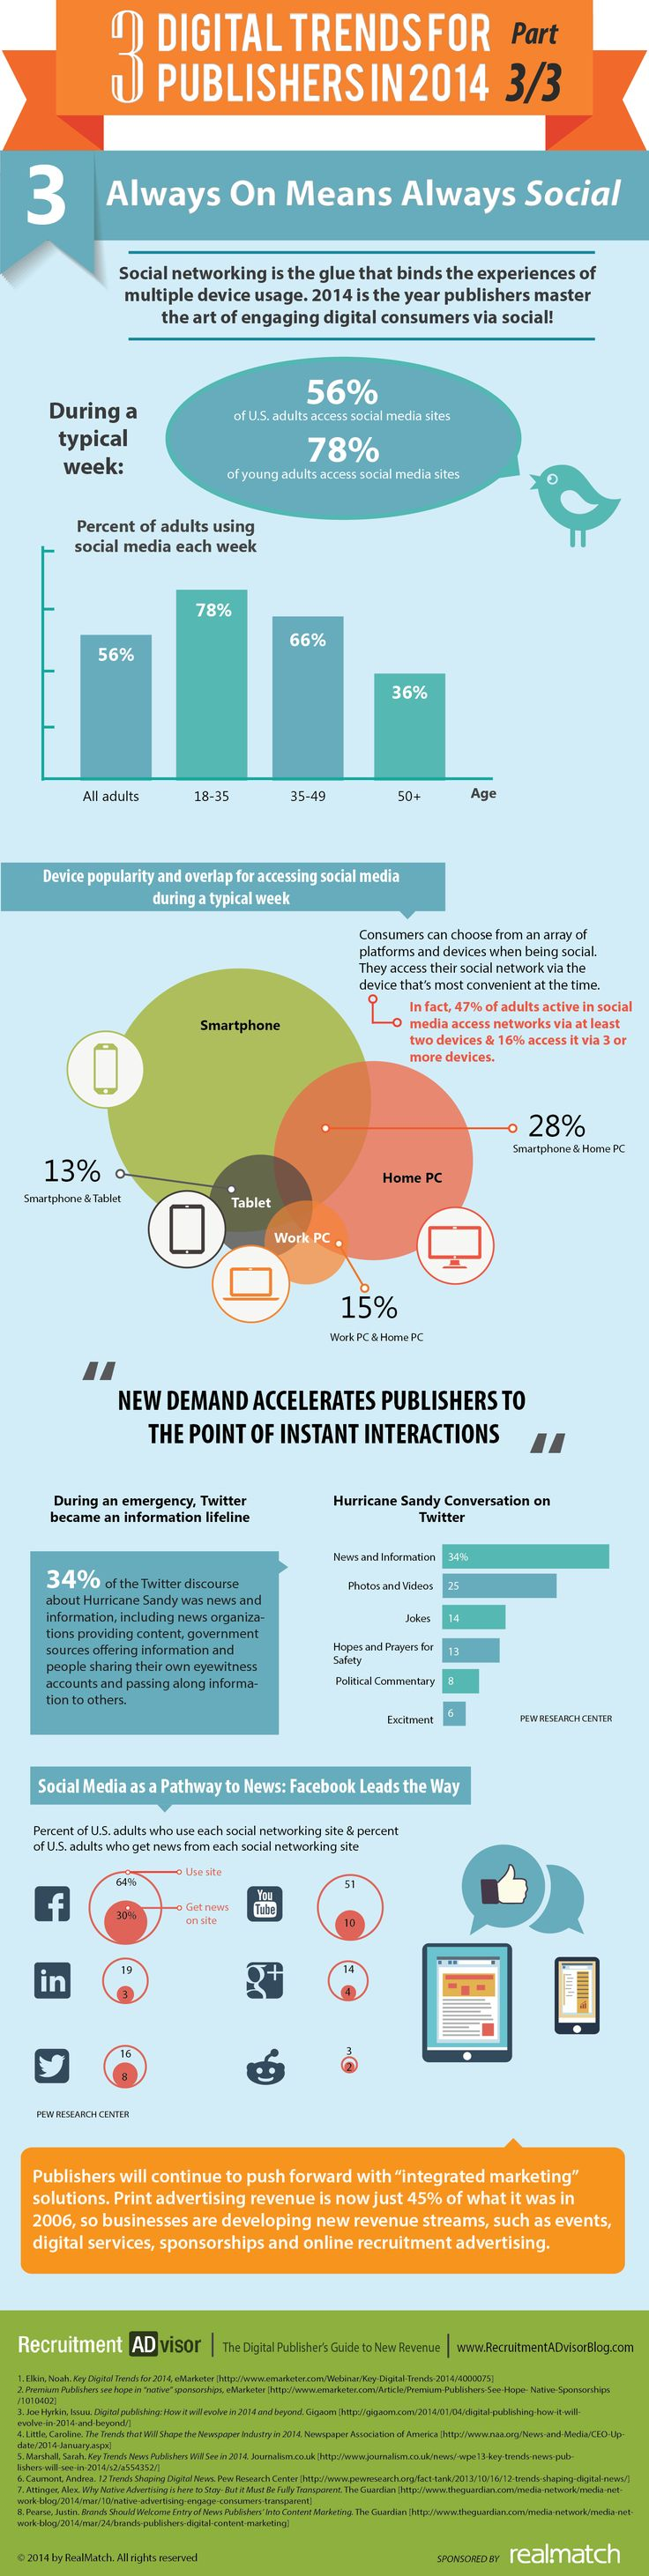 3 Digital Trends For Publishers in 2014 Part 3/3